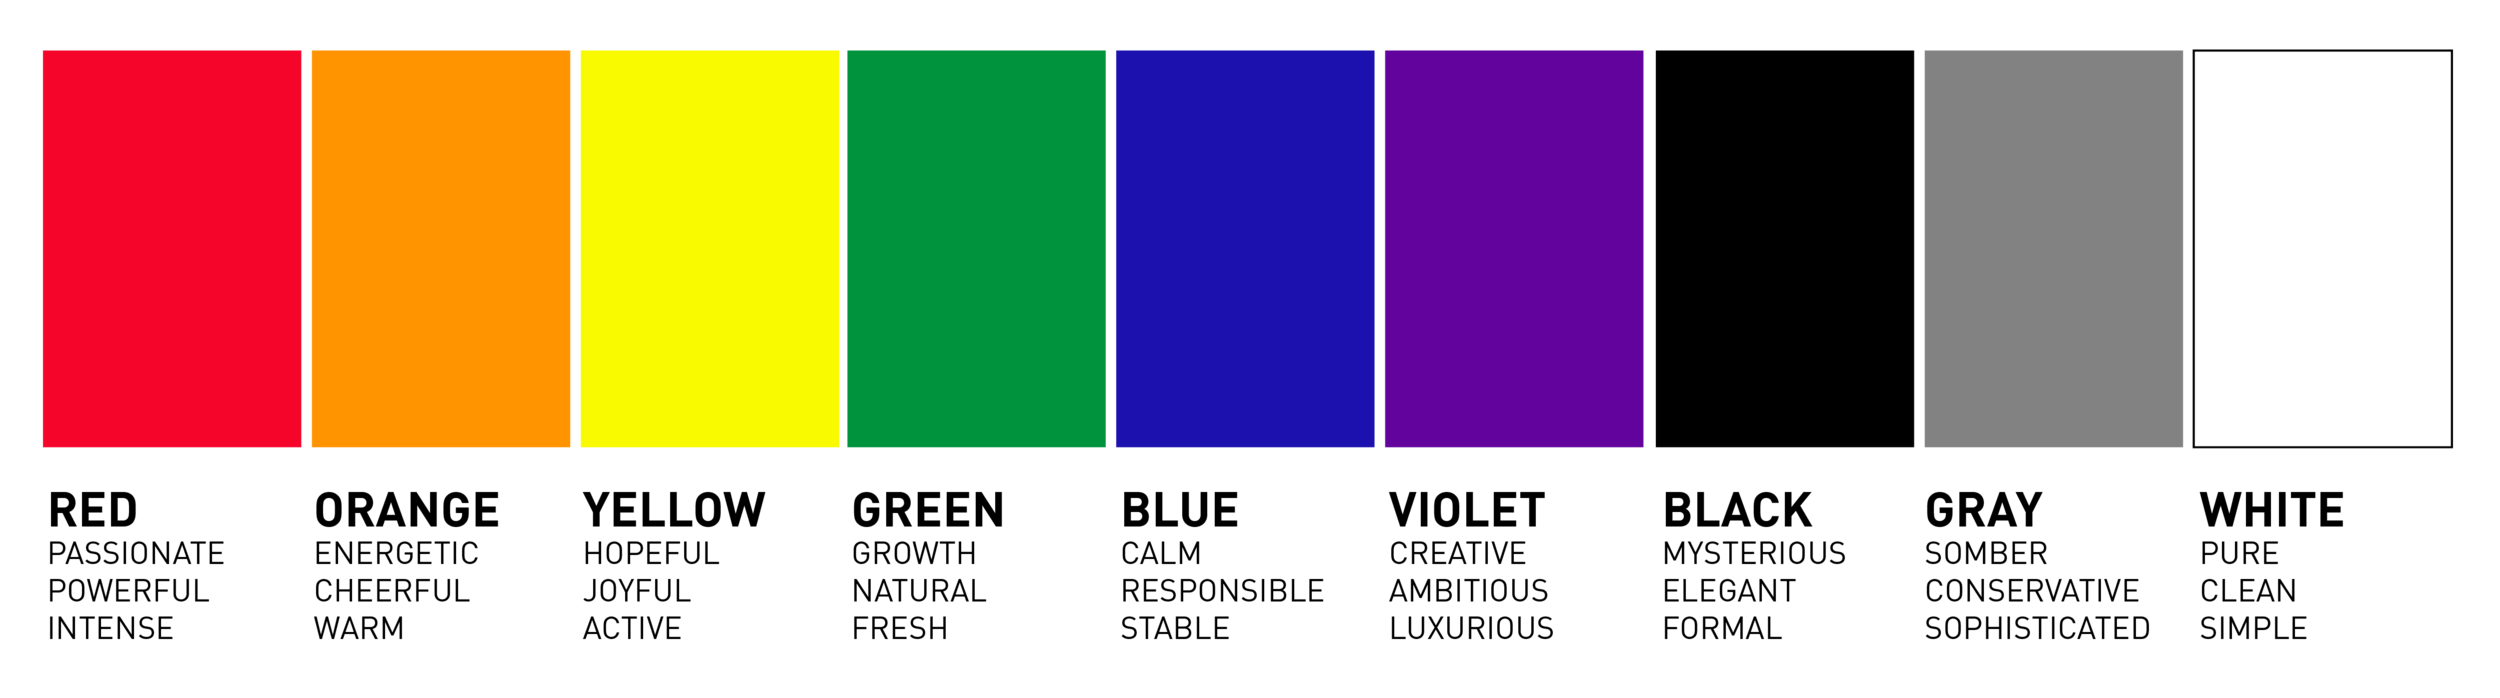 ColorTheoryBlogPost-08.png